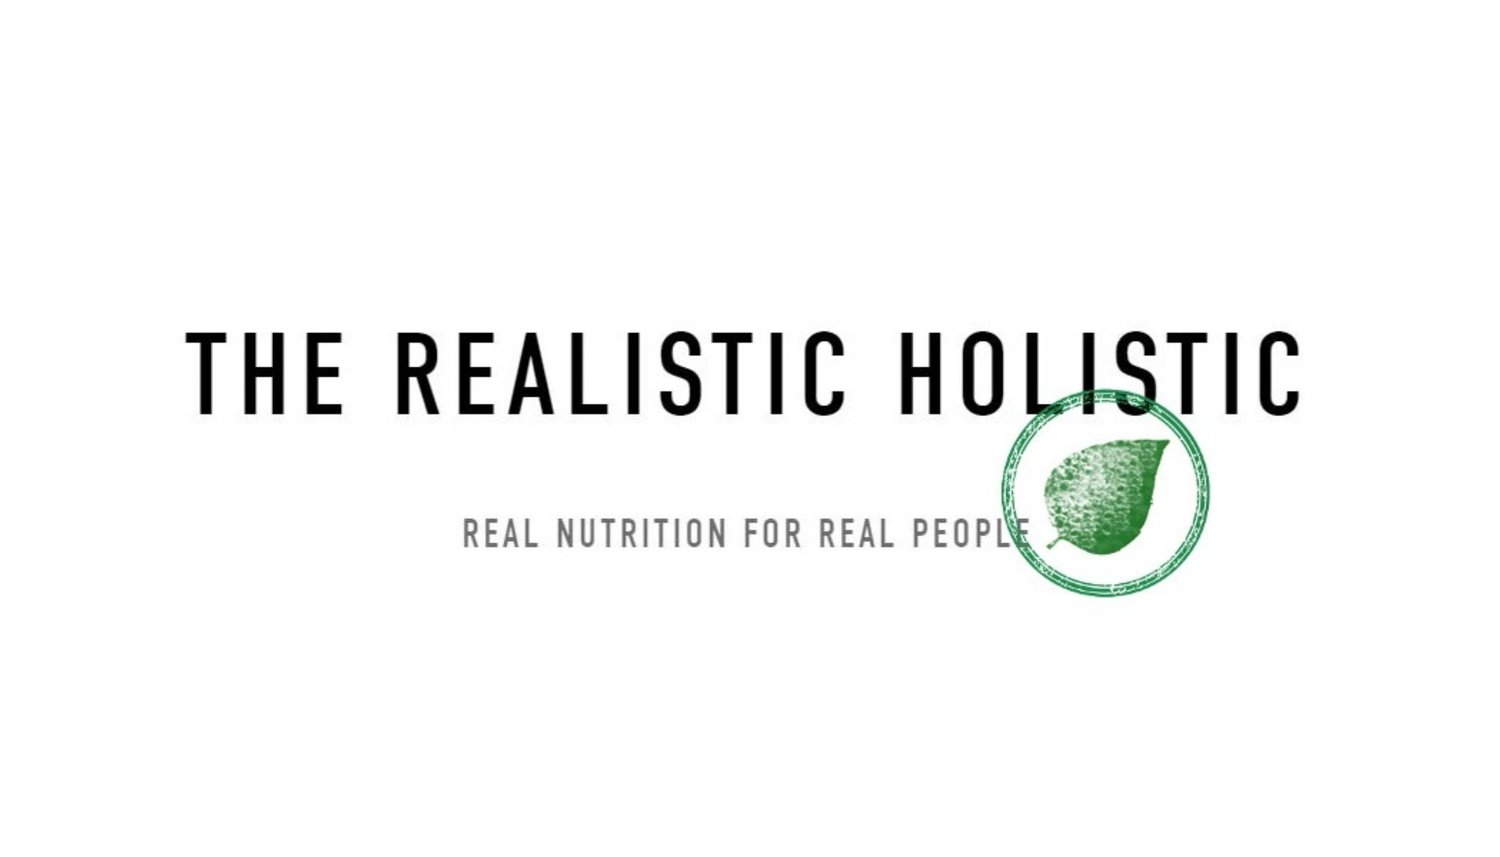 The Realistic Holistic